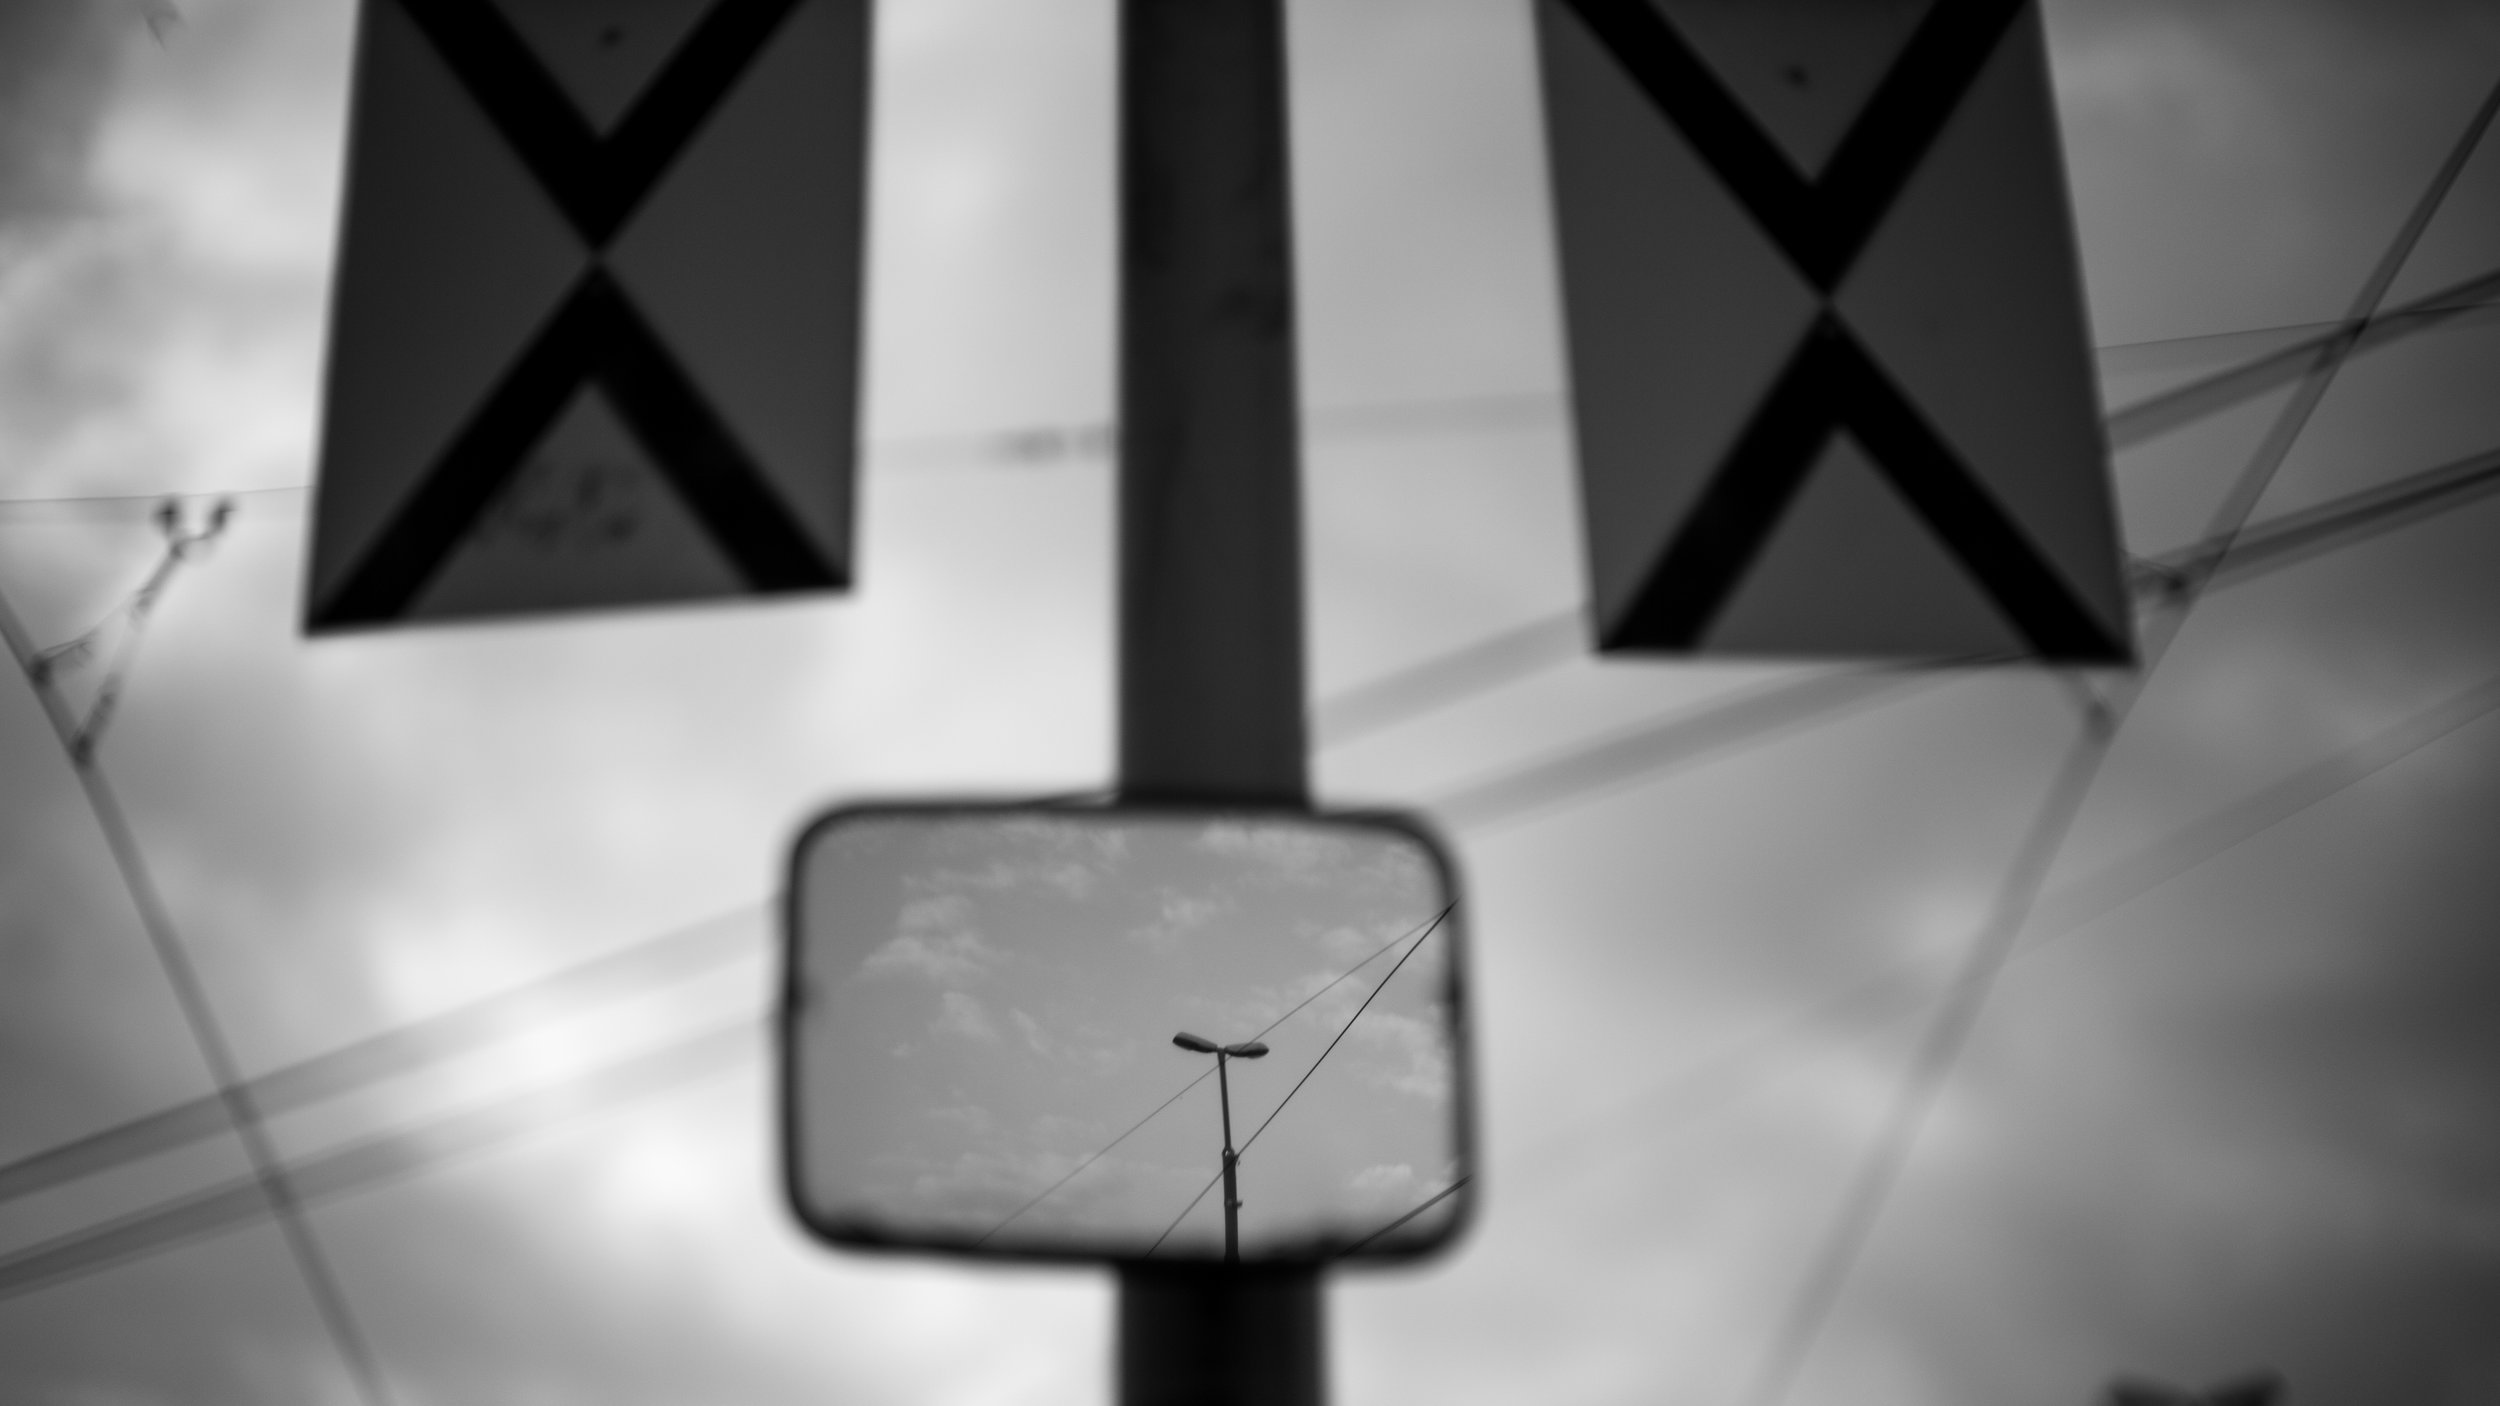 This is a bit of a surrealist image - a photograph of a light pole with a reflection of a light pole